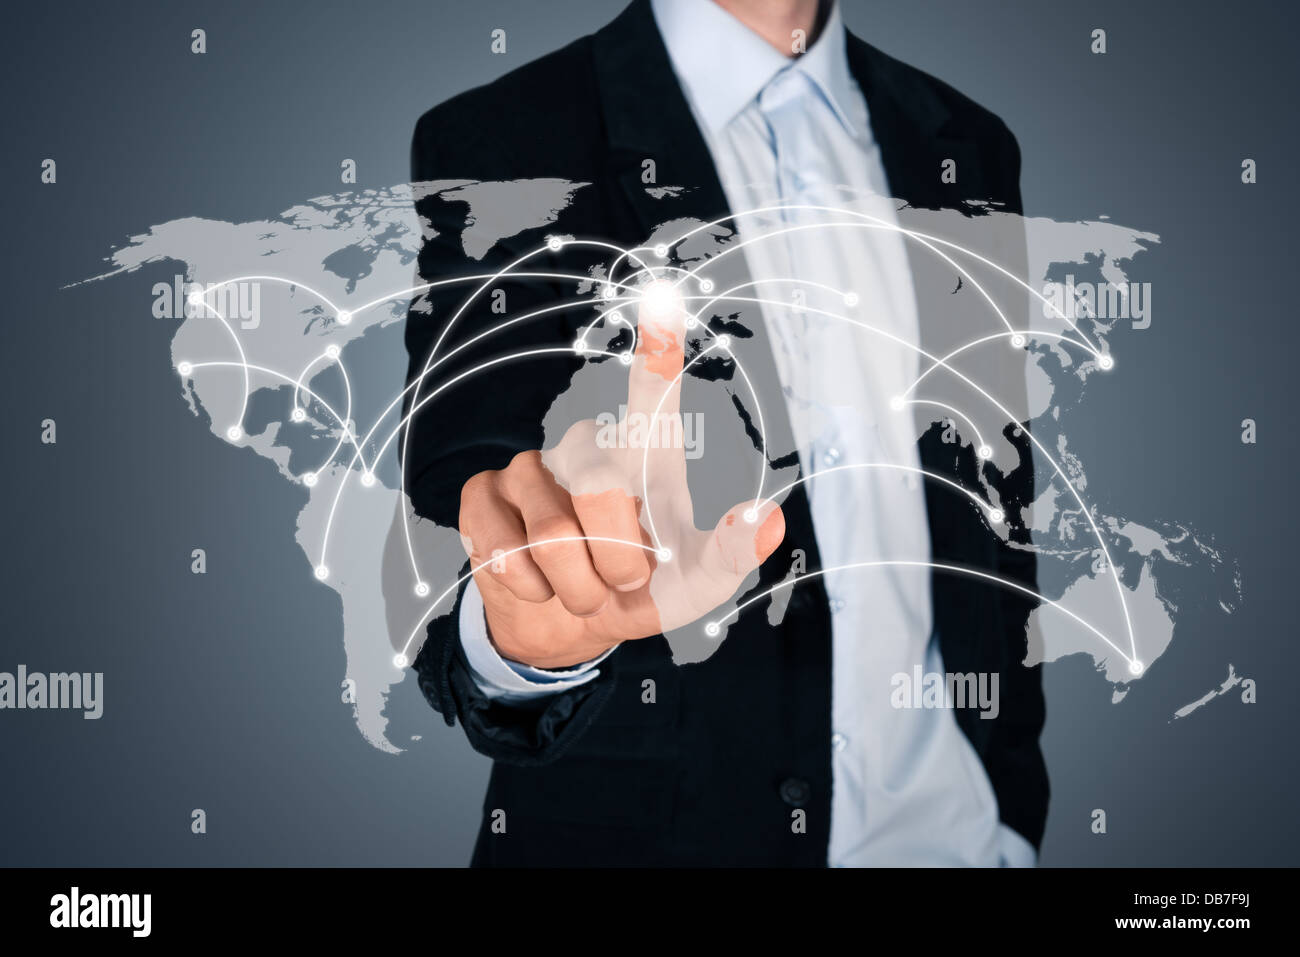 Portrait of handsome businessman touching a world map on the screen showing global connection between different - Stock Image